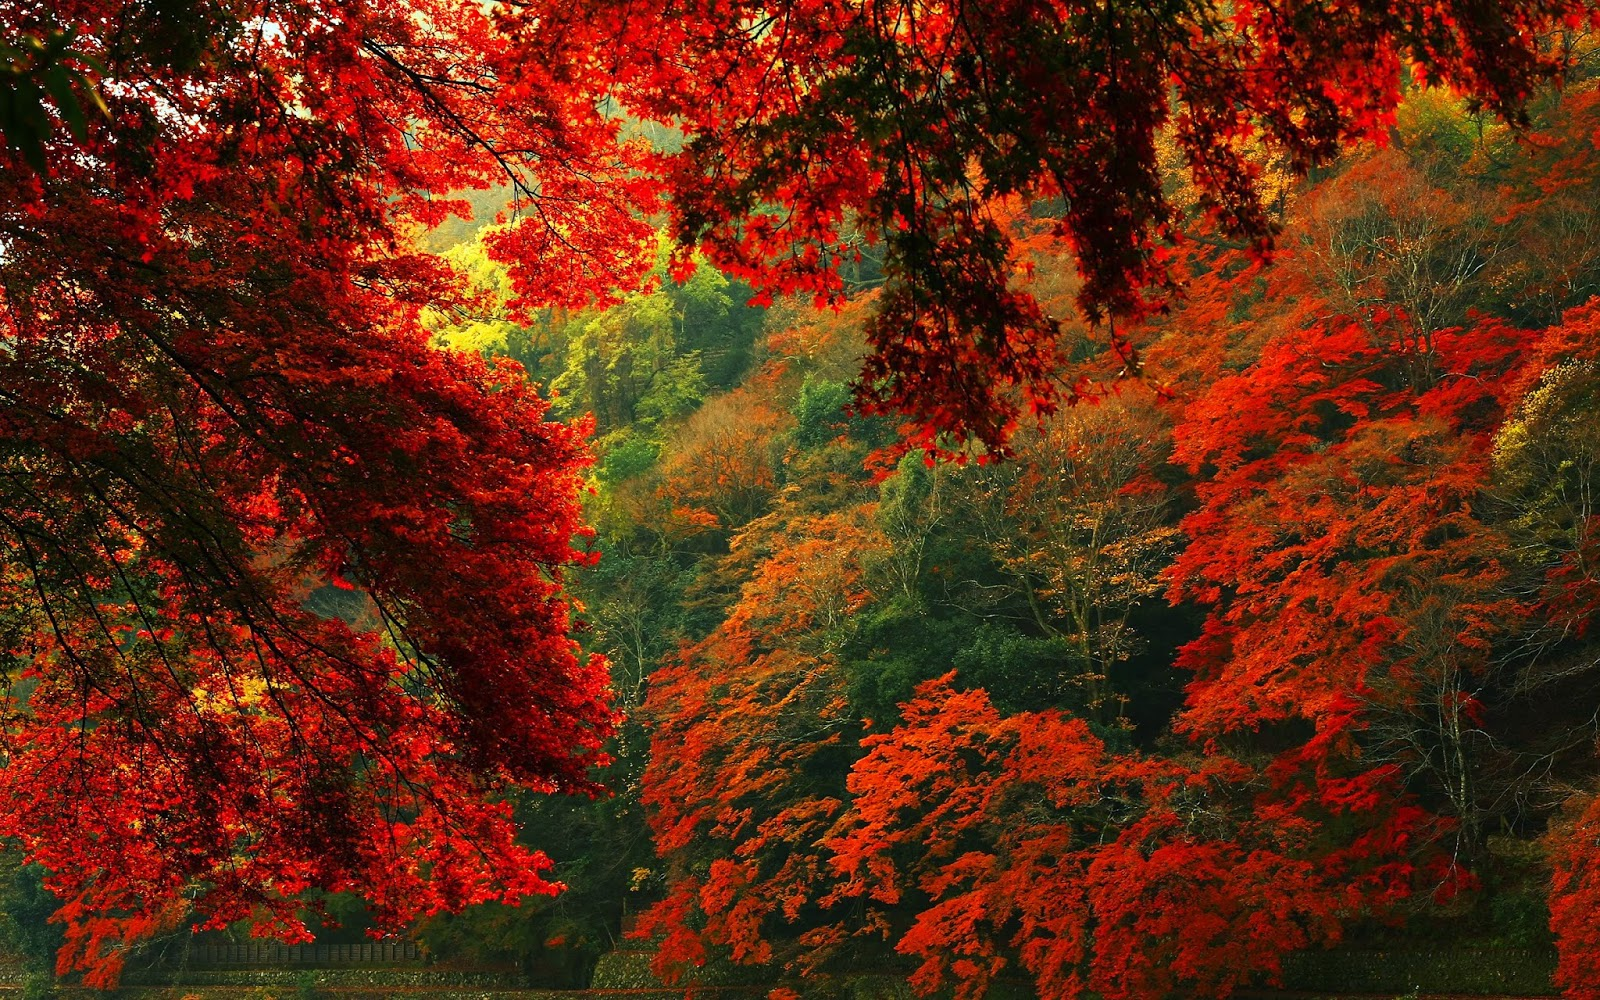 amazing red forest hd wallpapers ~ hyip bitz - hyip investment